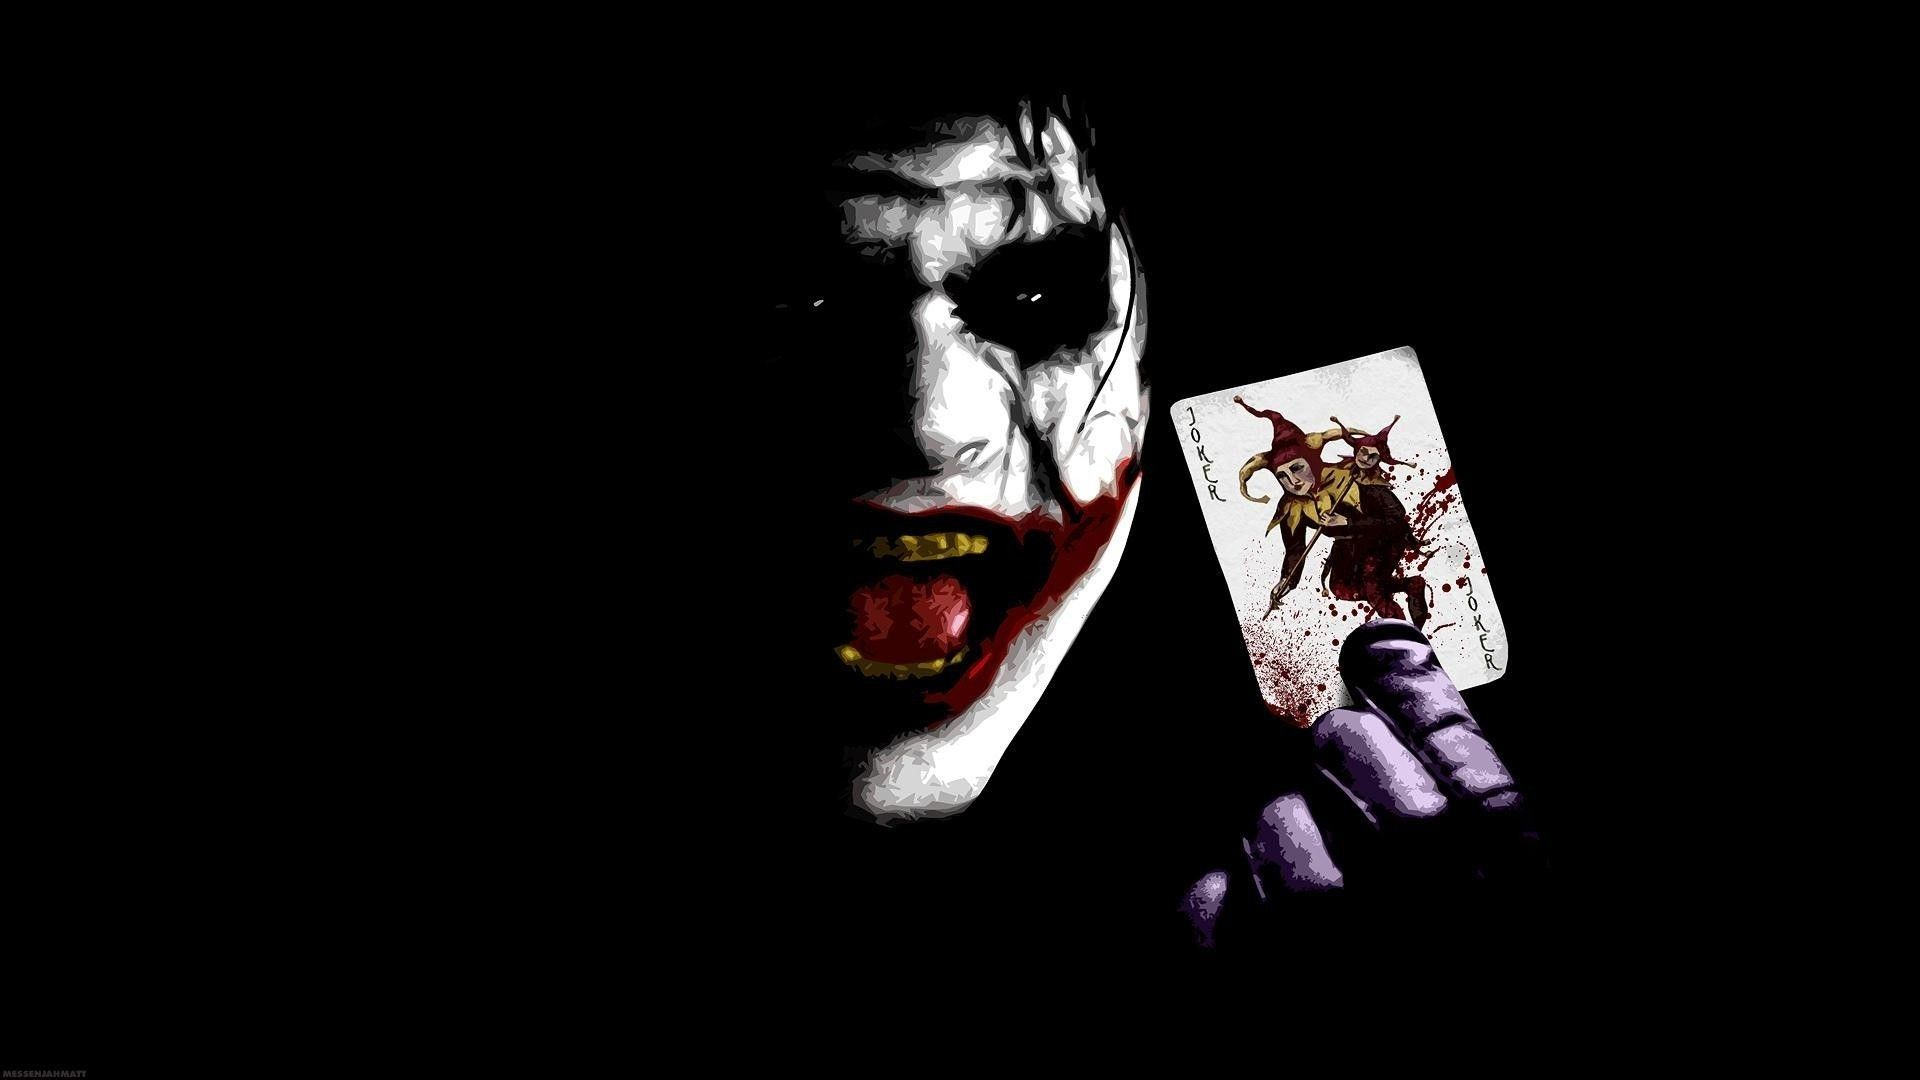 Res 1920x1080 Hd Cool Wallpapers Pc And Ipad Desktop In 2020 With Images Joker Wallpapers